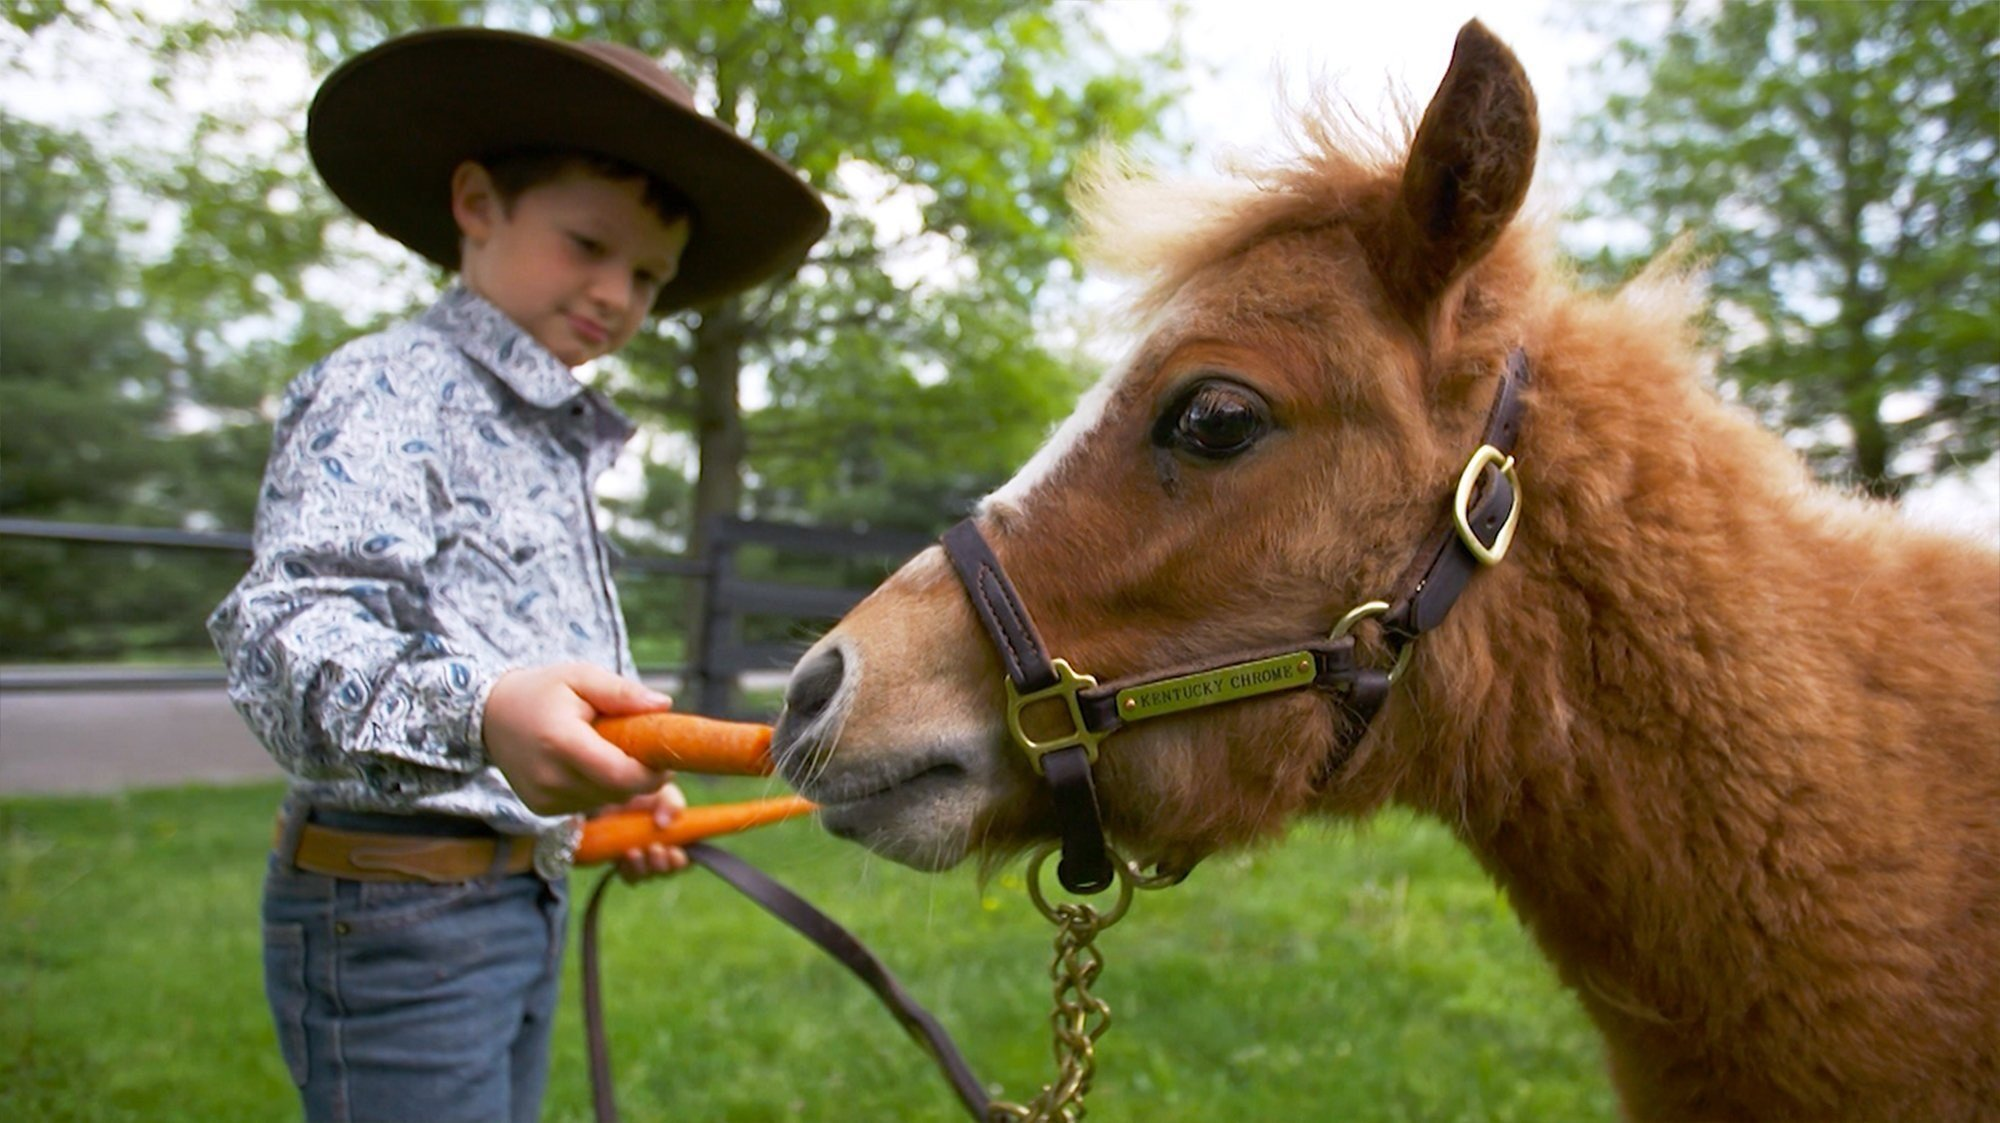 Five-year-old Luke was the first to jump into the pen with 'Tucky'.